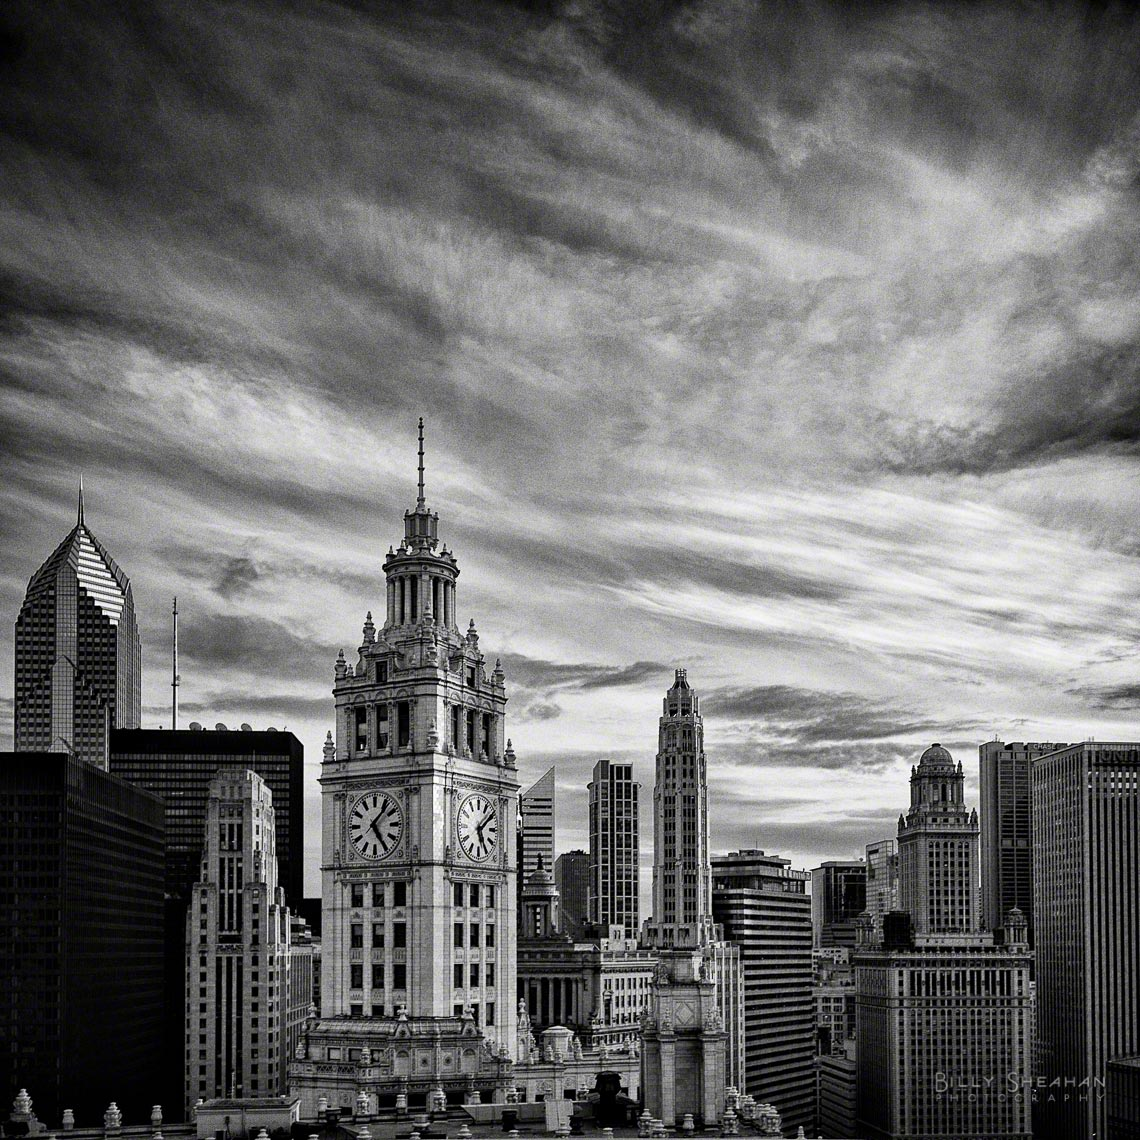 Clouds_Over_Wrigley_Building_Chicago_05Mar2008_0024_BW_D.jpg